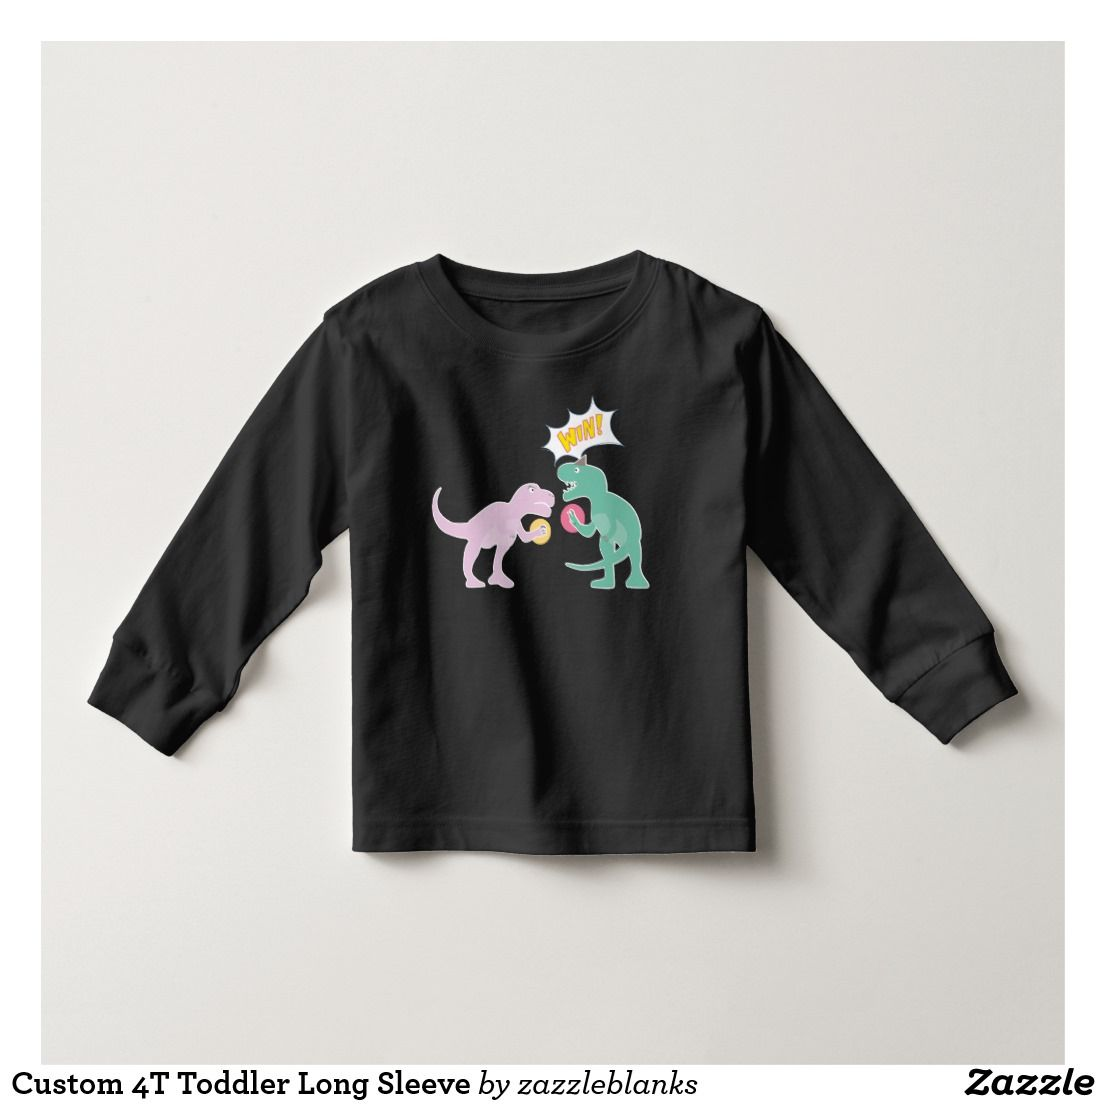 Design your own t shirt zazzle - Customize Your Own 4t Toddler Long Sleeve On Zazzle Use The Customize Design Tool To Upload Insert Your Own Artwork Design Or Pictures To Make A One Of